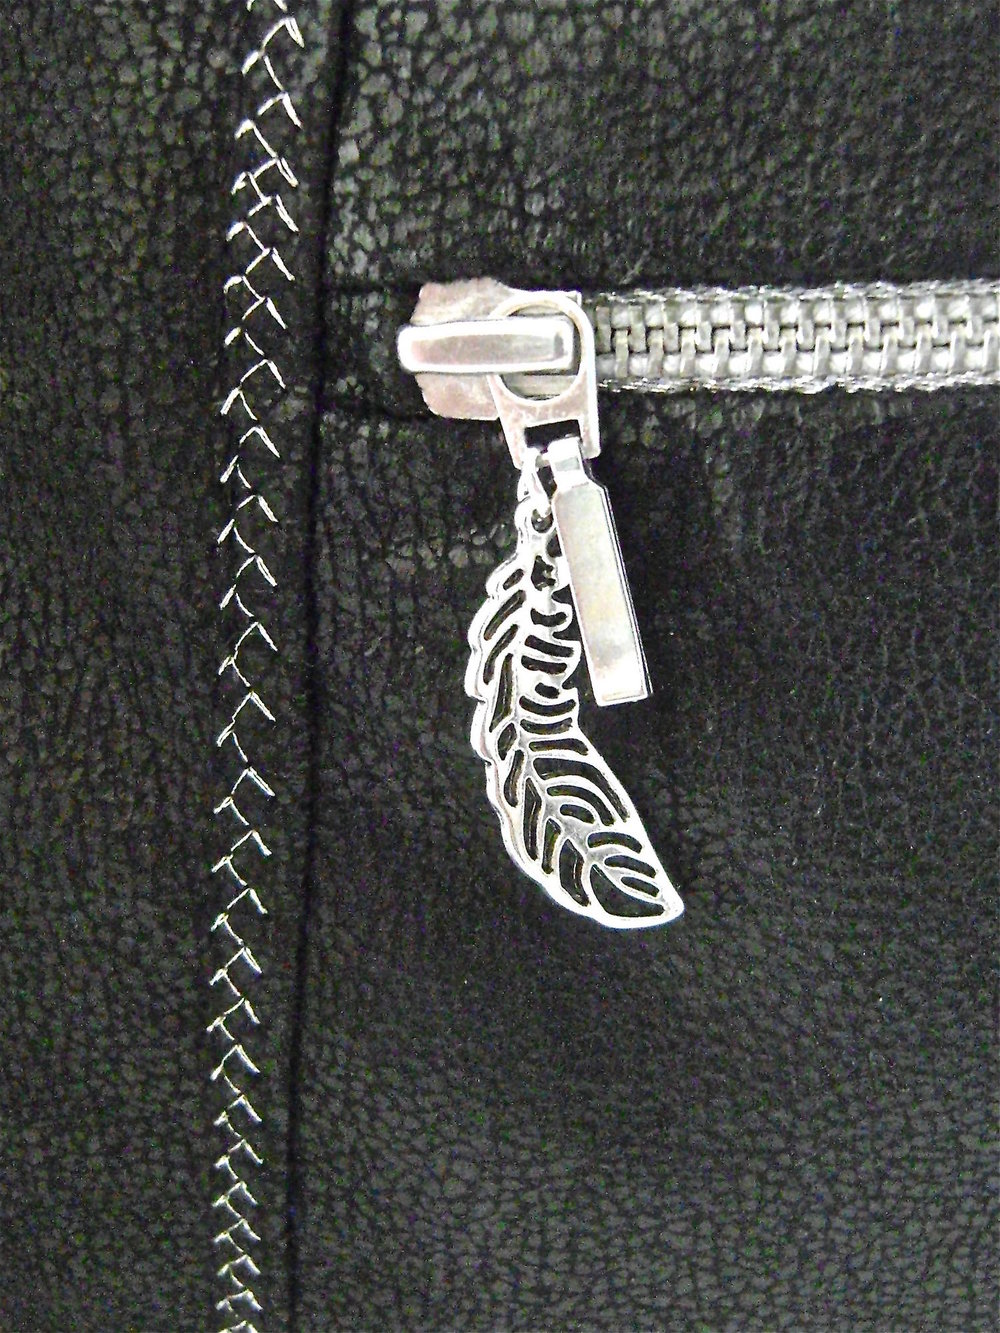 step 40 - Attach a special silver leaf charm to the zipper pull.